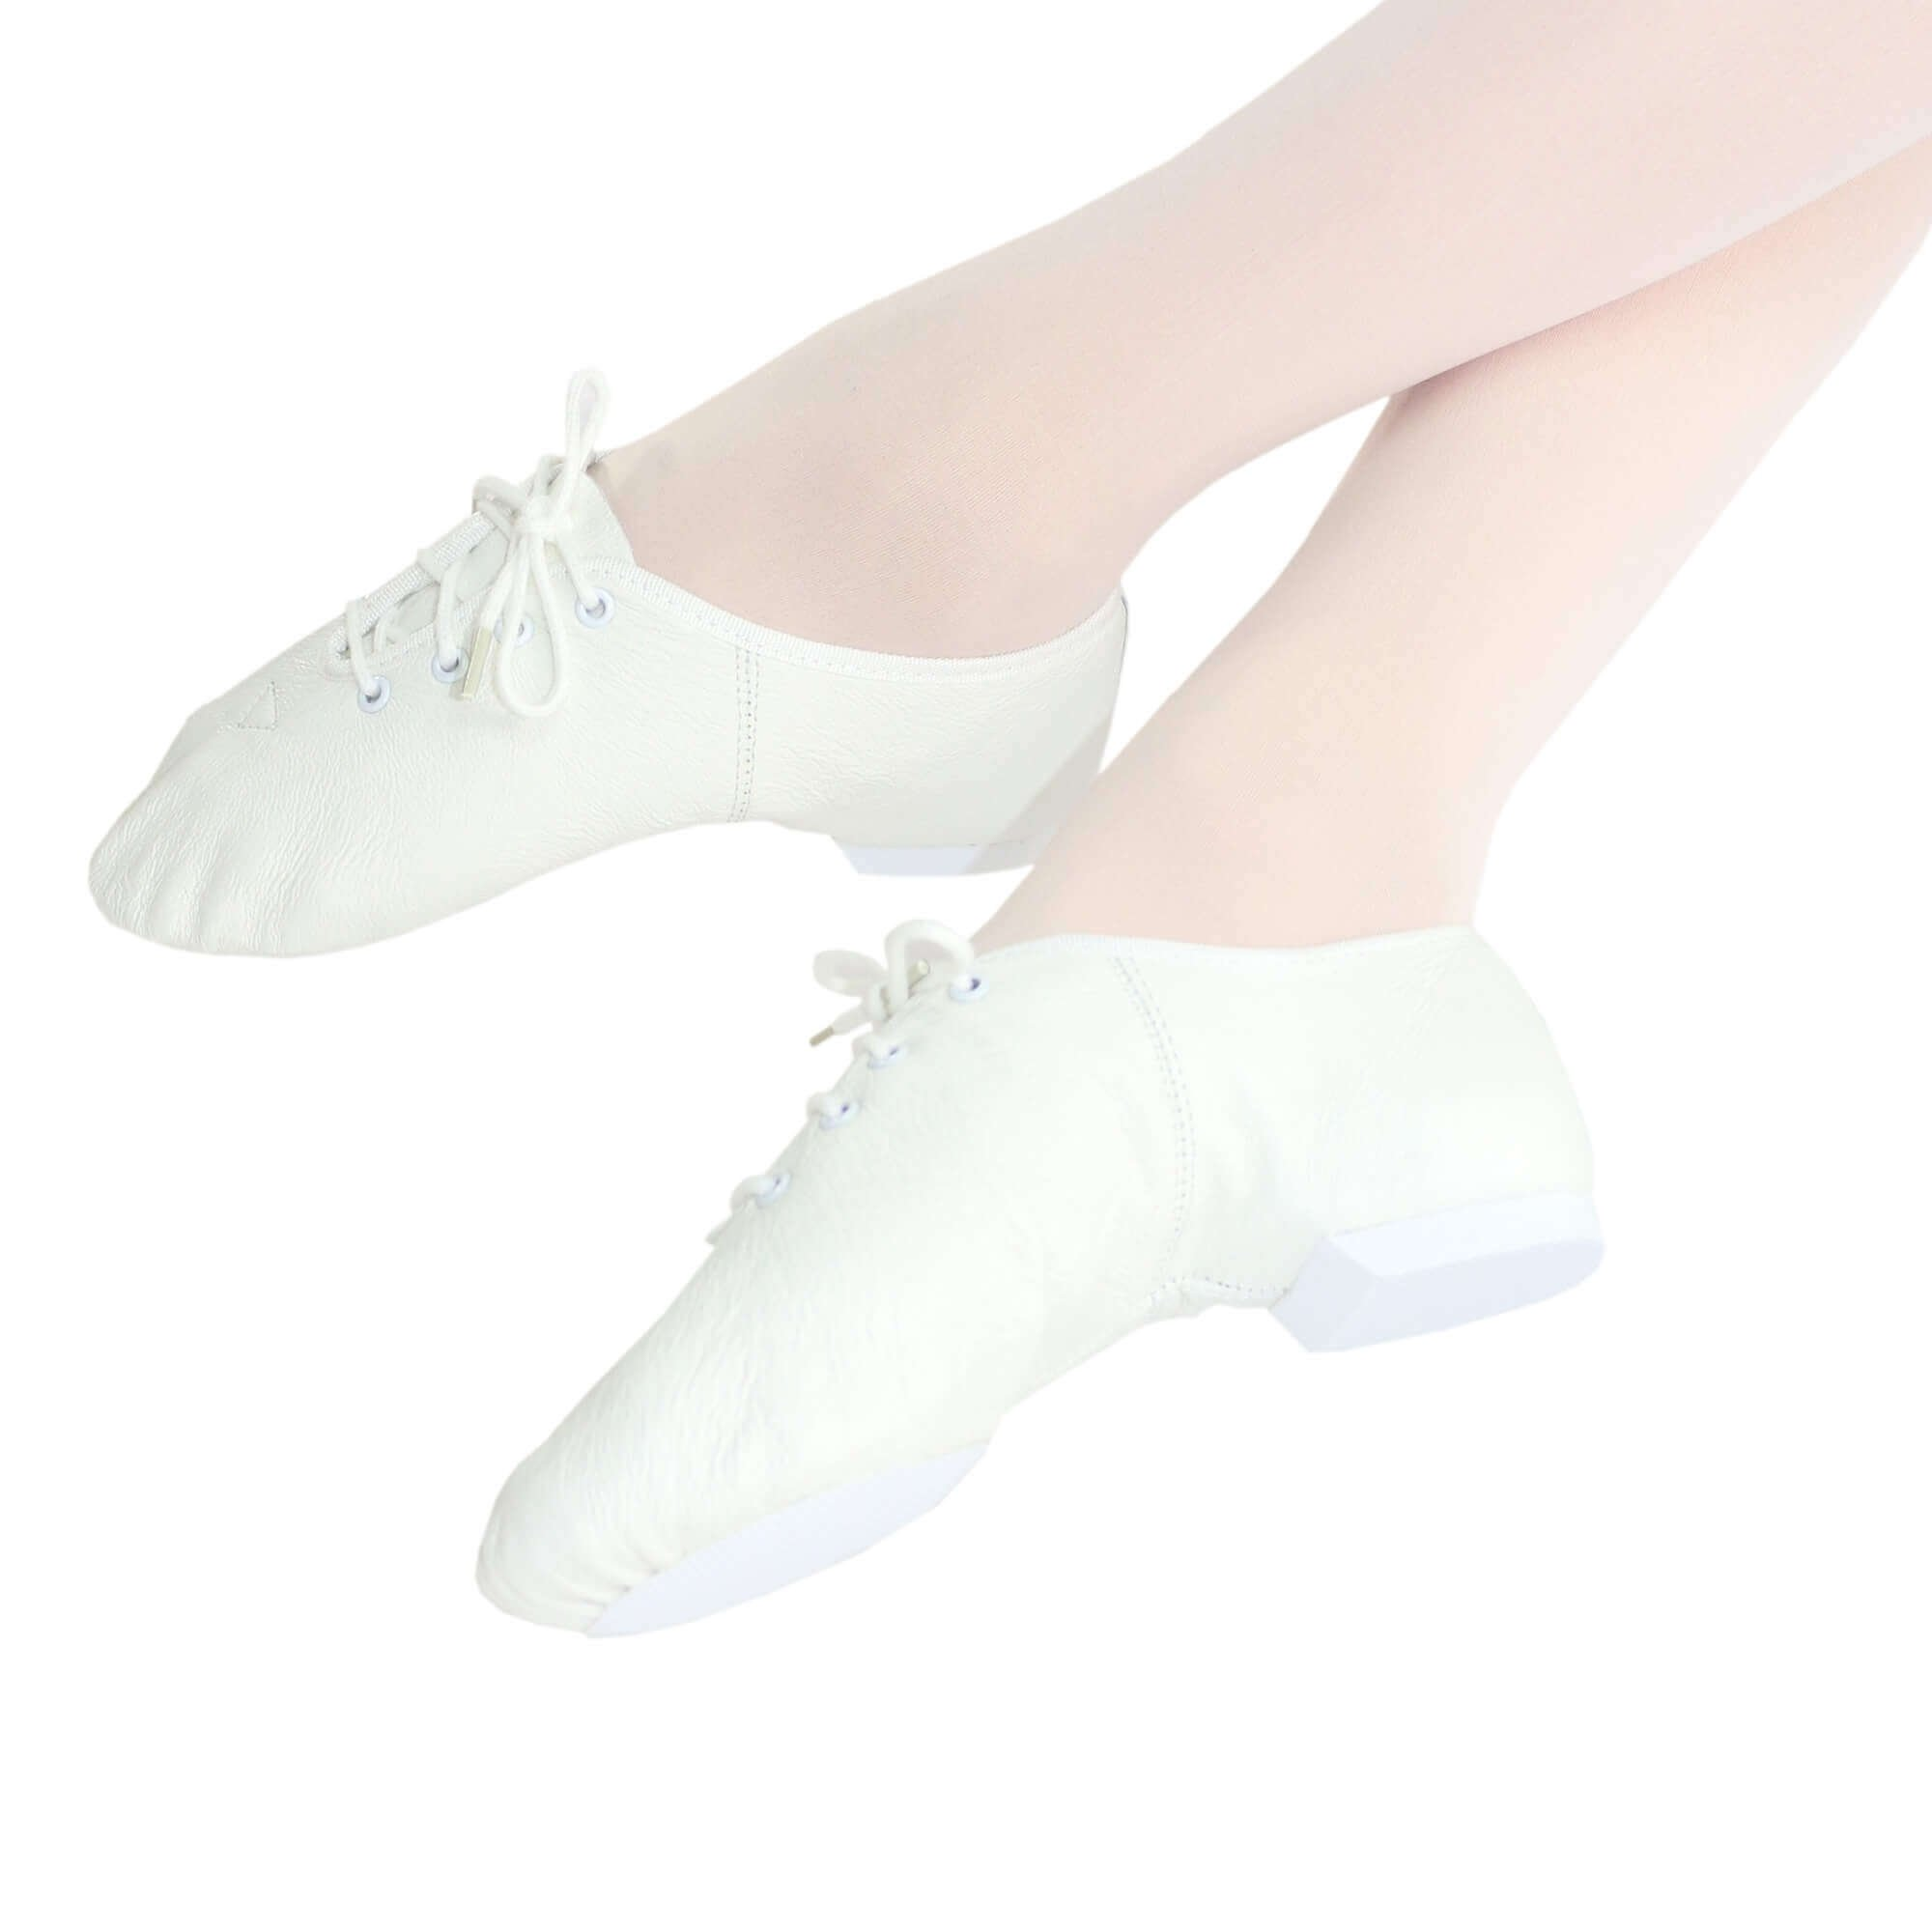 Danzcue Youth Jazzsoft Jazz Shoes